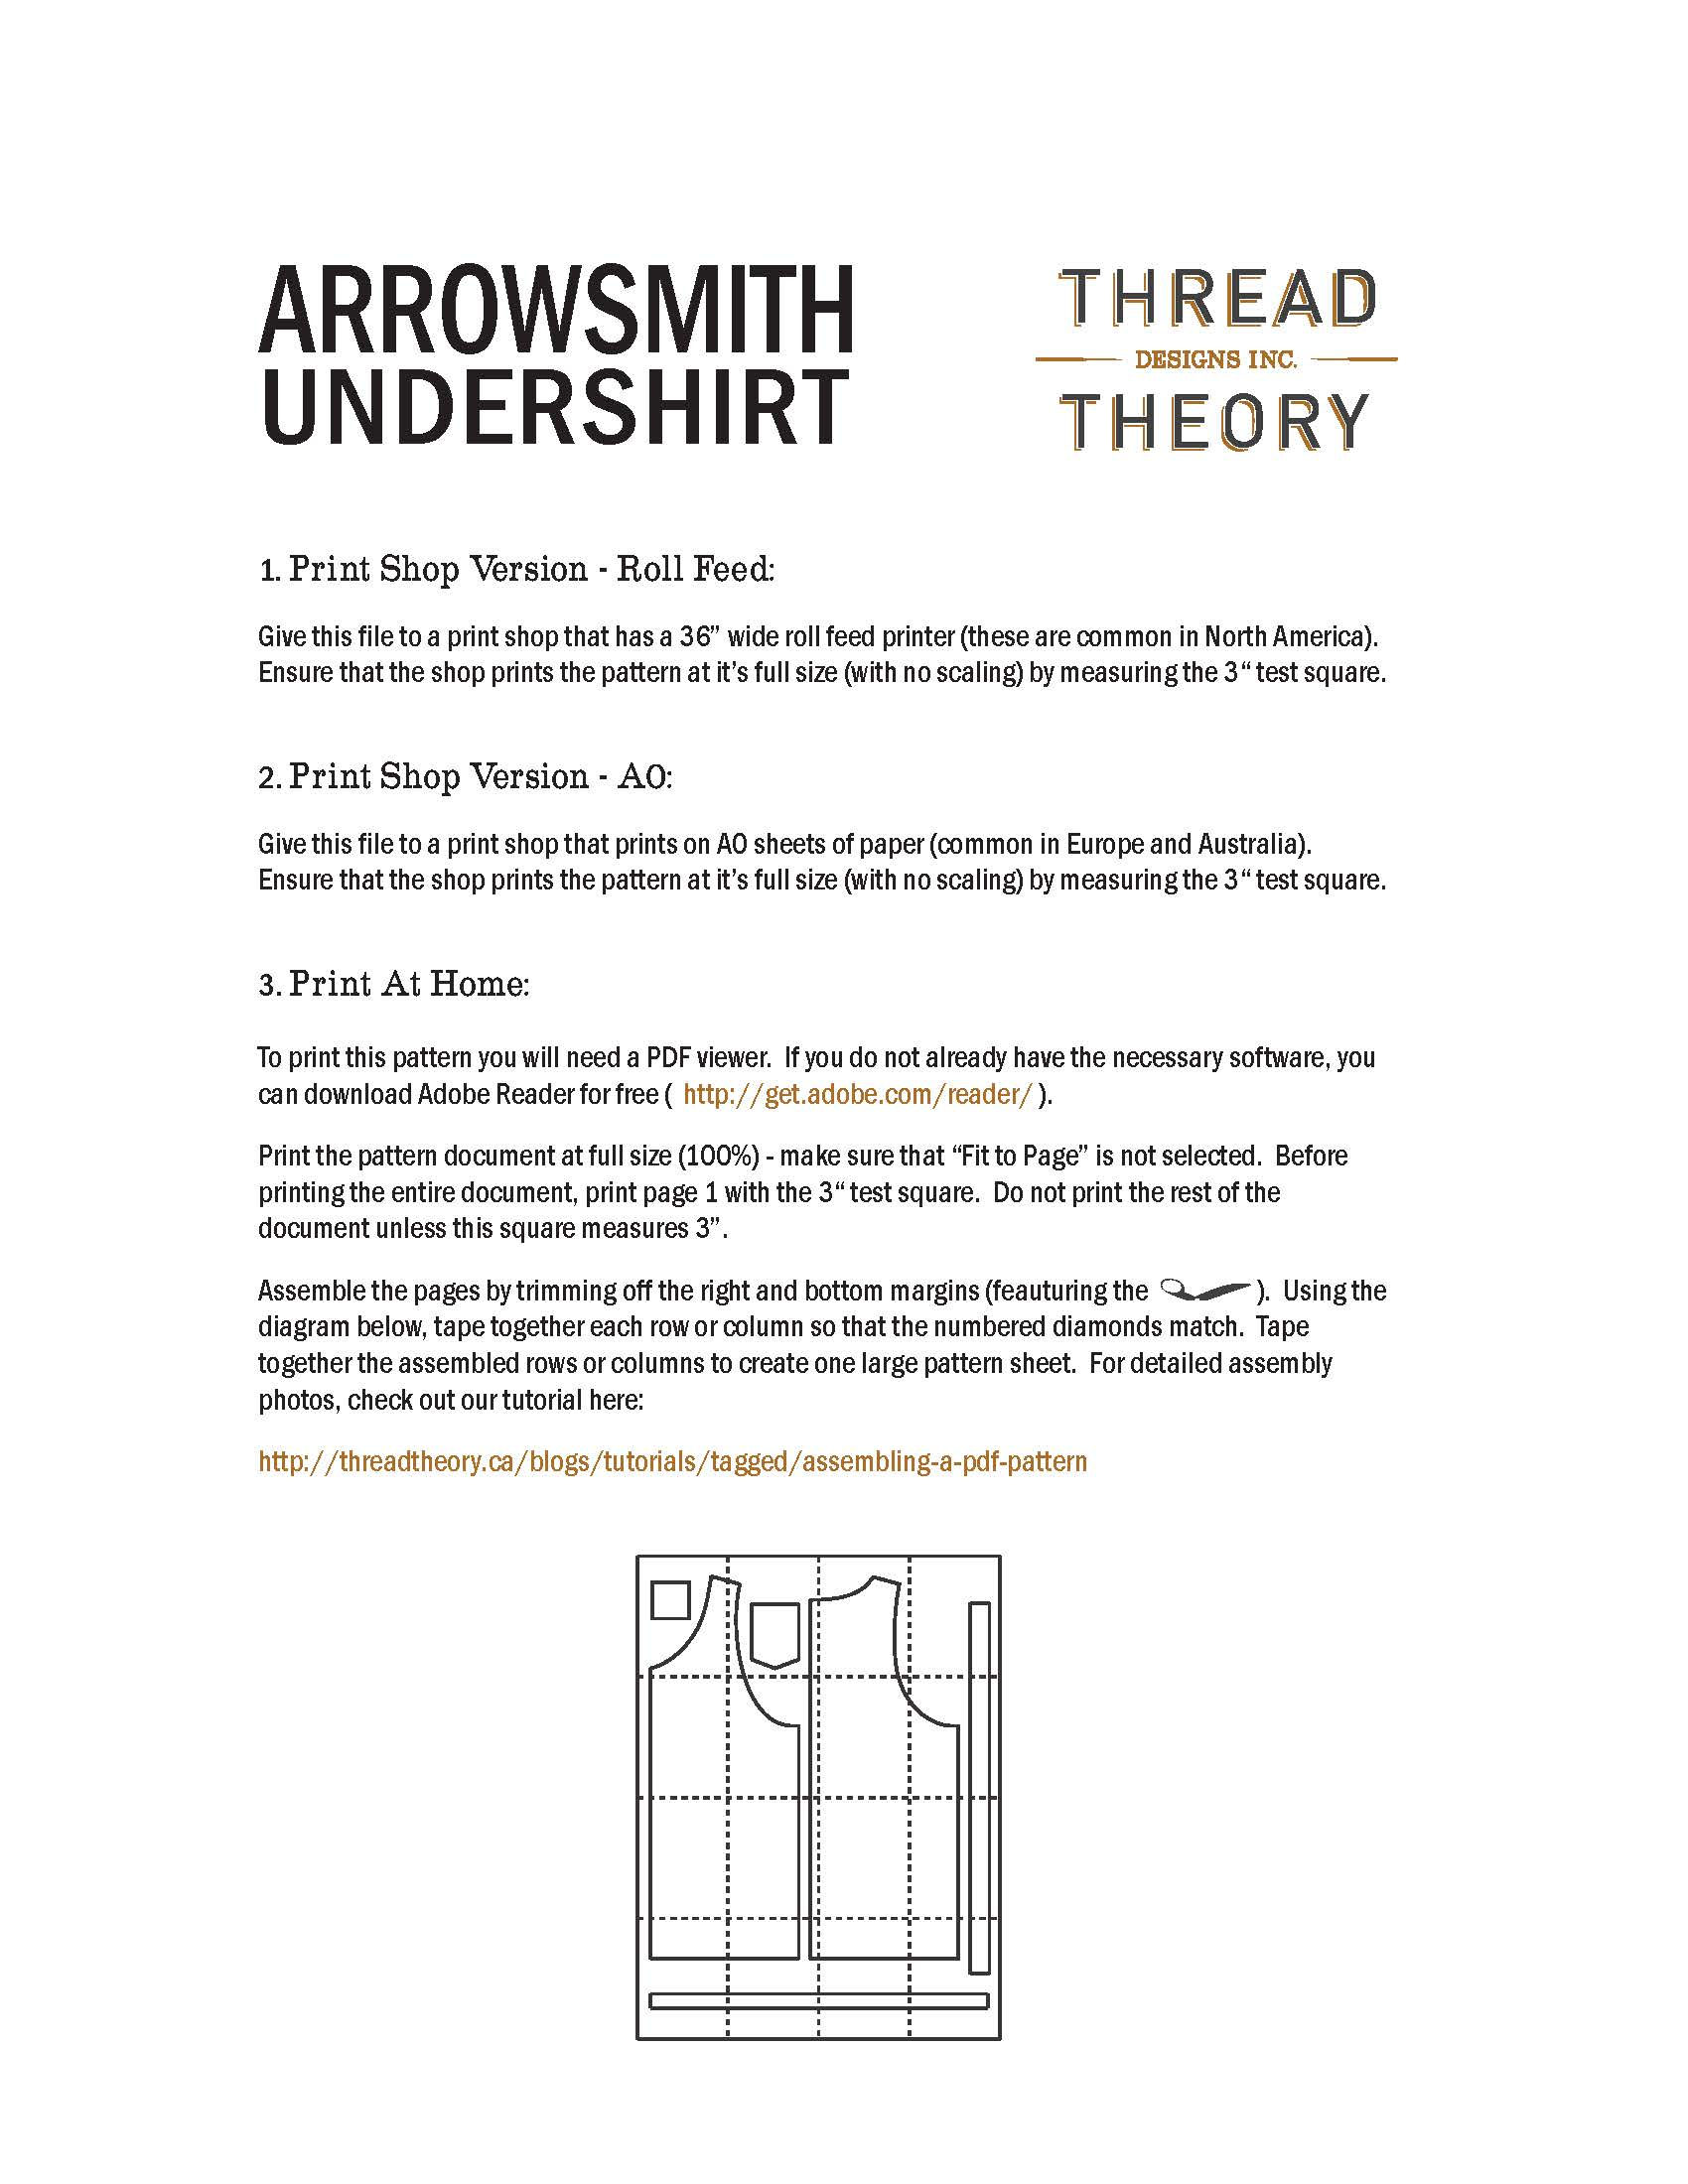 how to assemble a pdf pattern u2013 thread theory